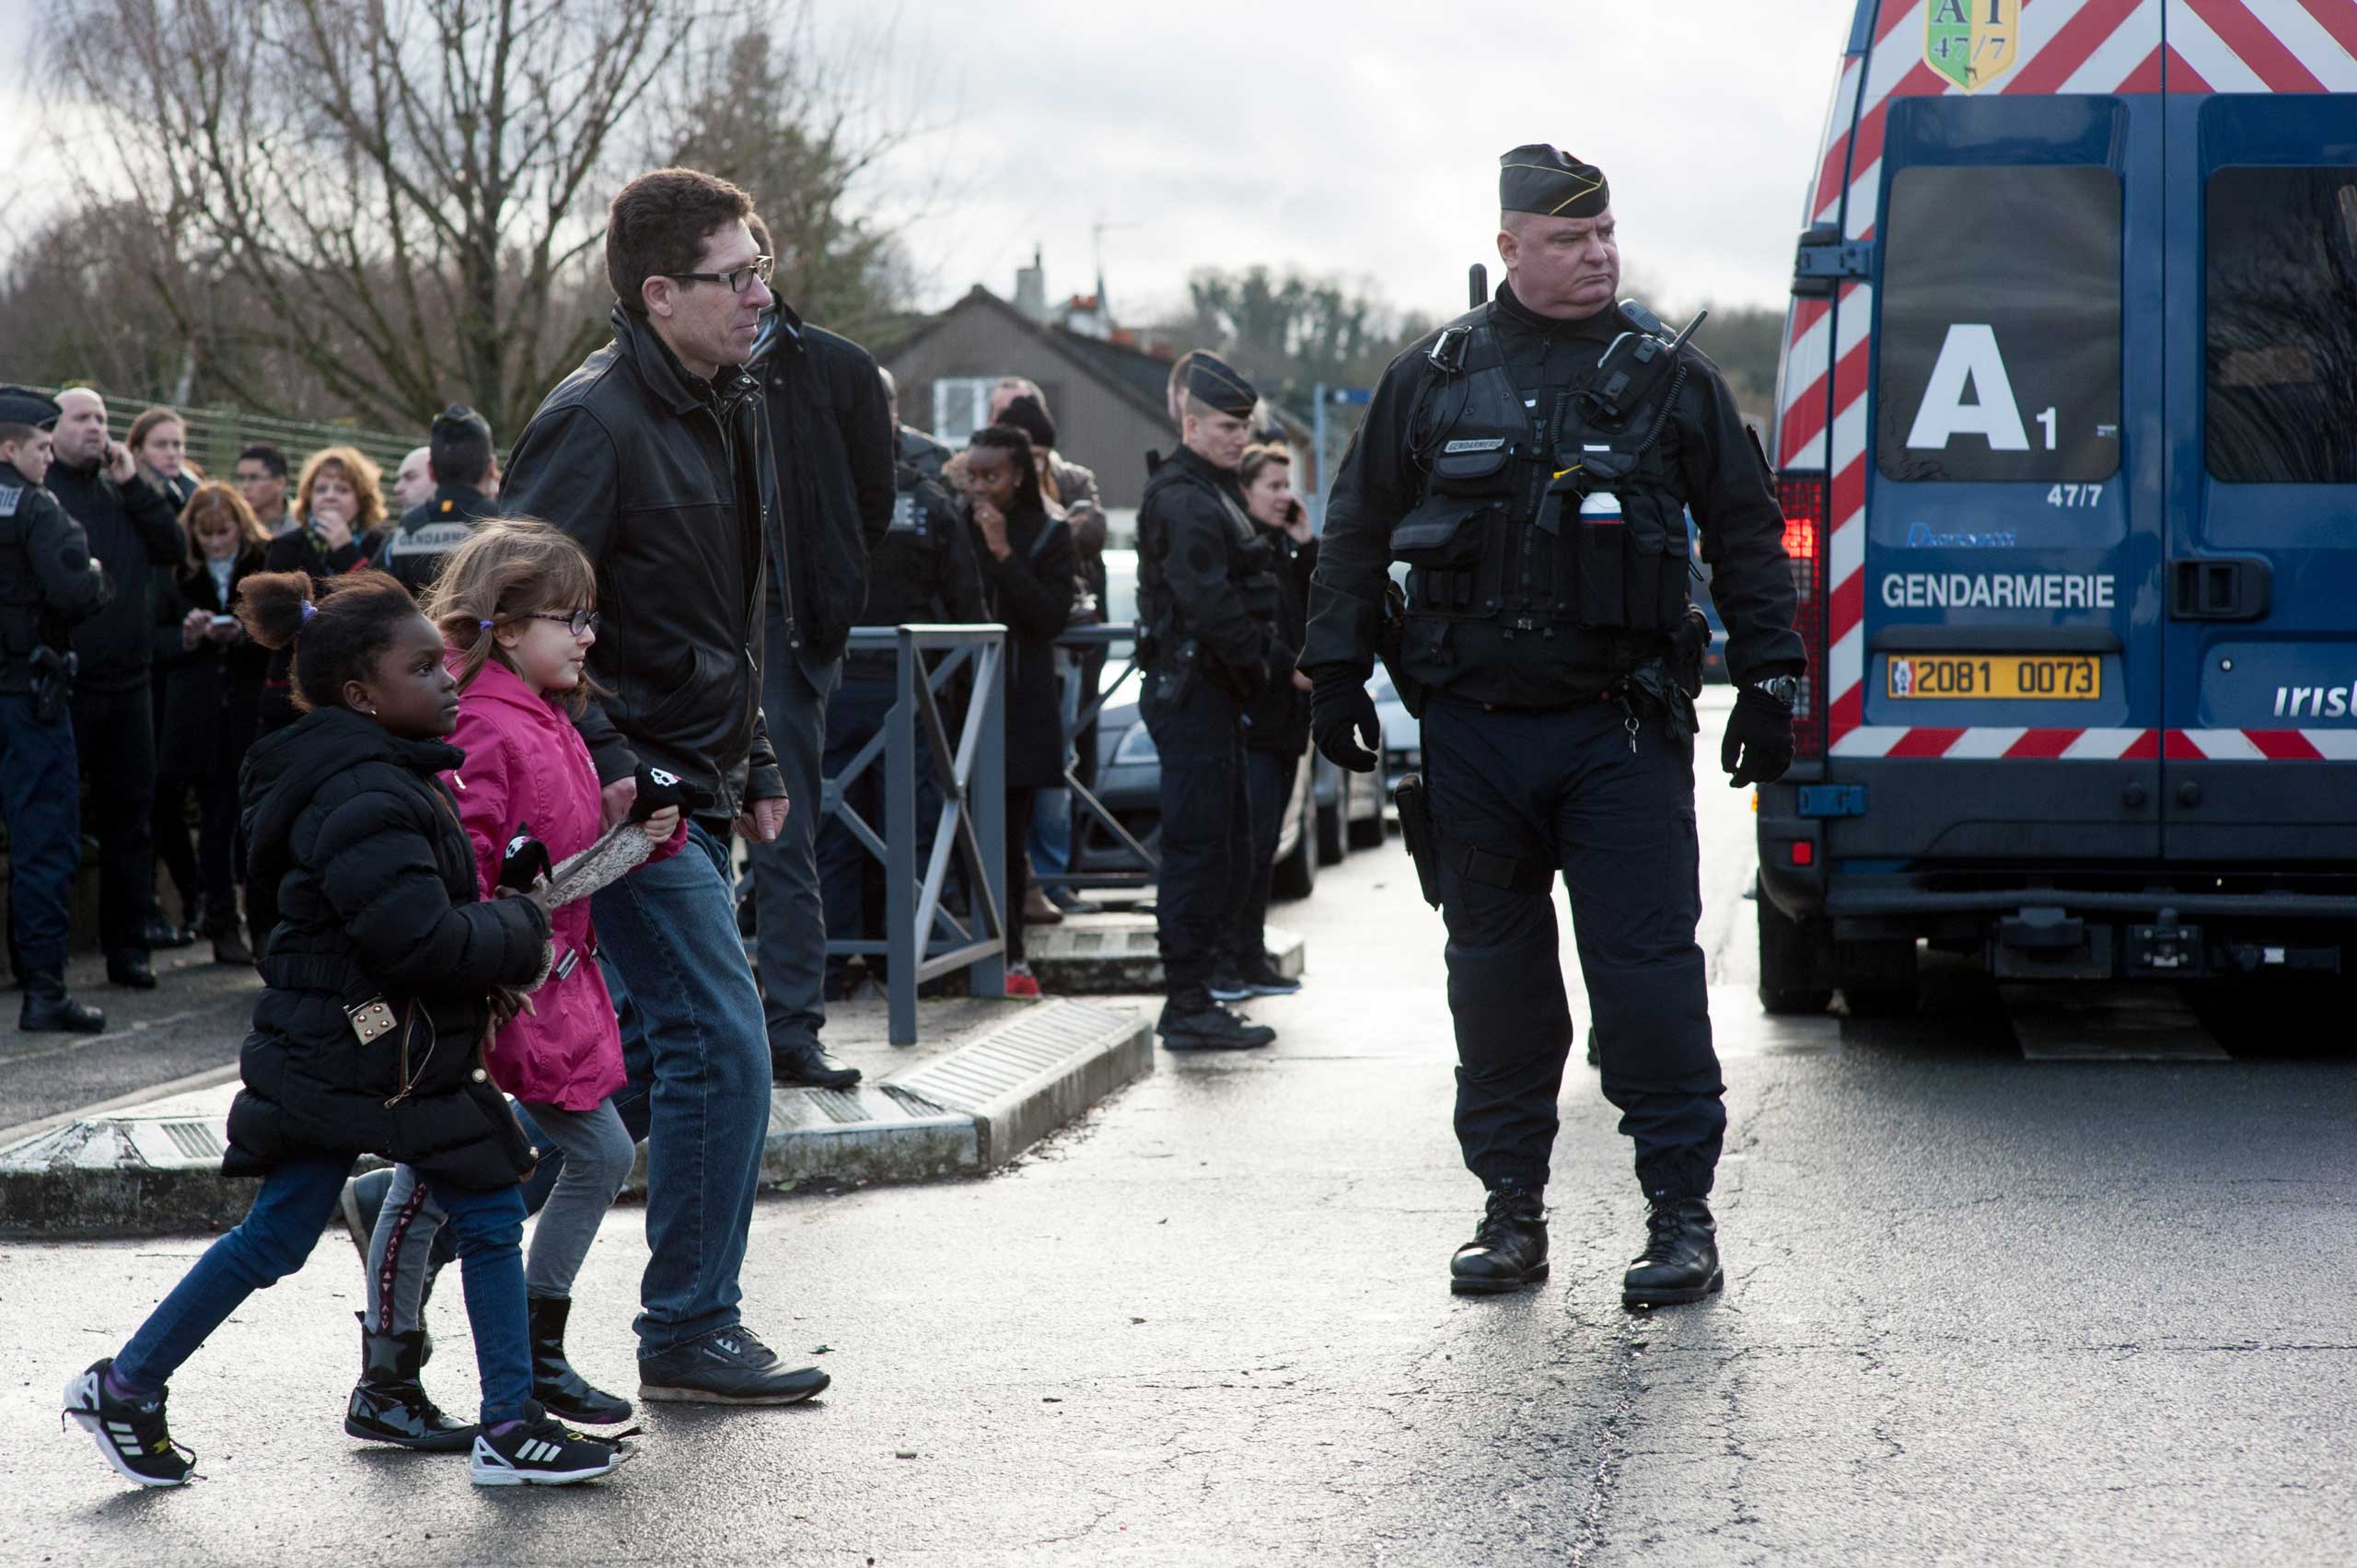 Police forces evacuate the children of the Henry-Dunant primary school located next to printing company Creation Tendance Decouverte CTD, where the two Charlie Hebdo gunmen are detaining a hostage, in Dammartin-en-Goele, north of Paris, France on Jan. 9, 2015.